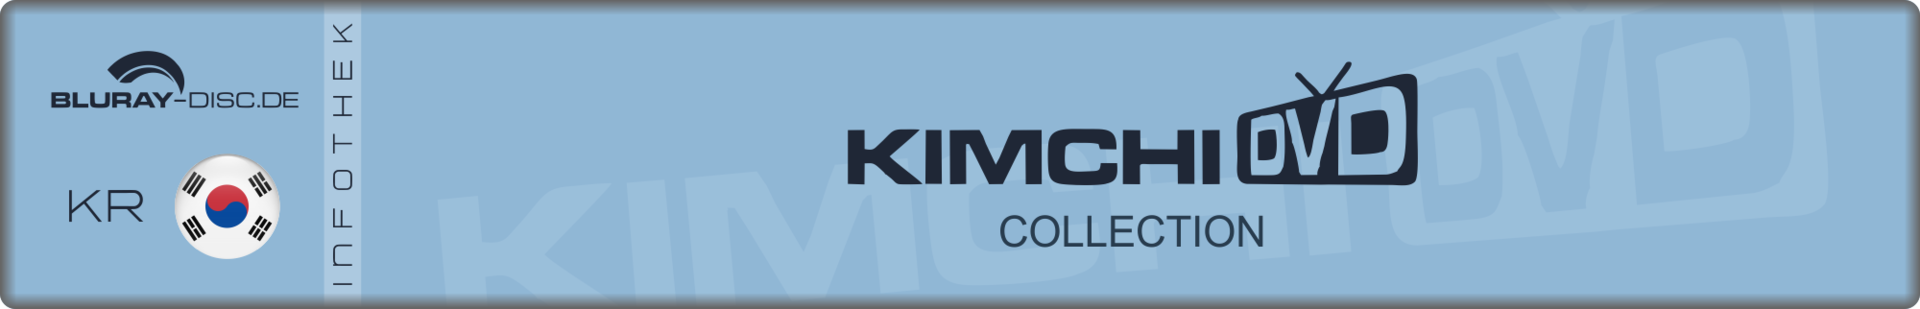 KimchiDVD_Collection_Banner